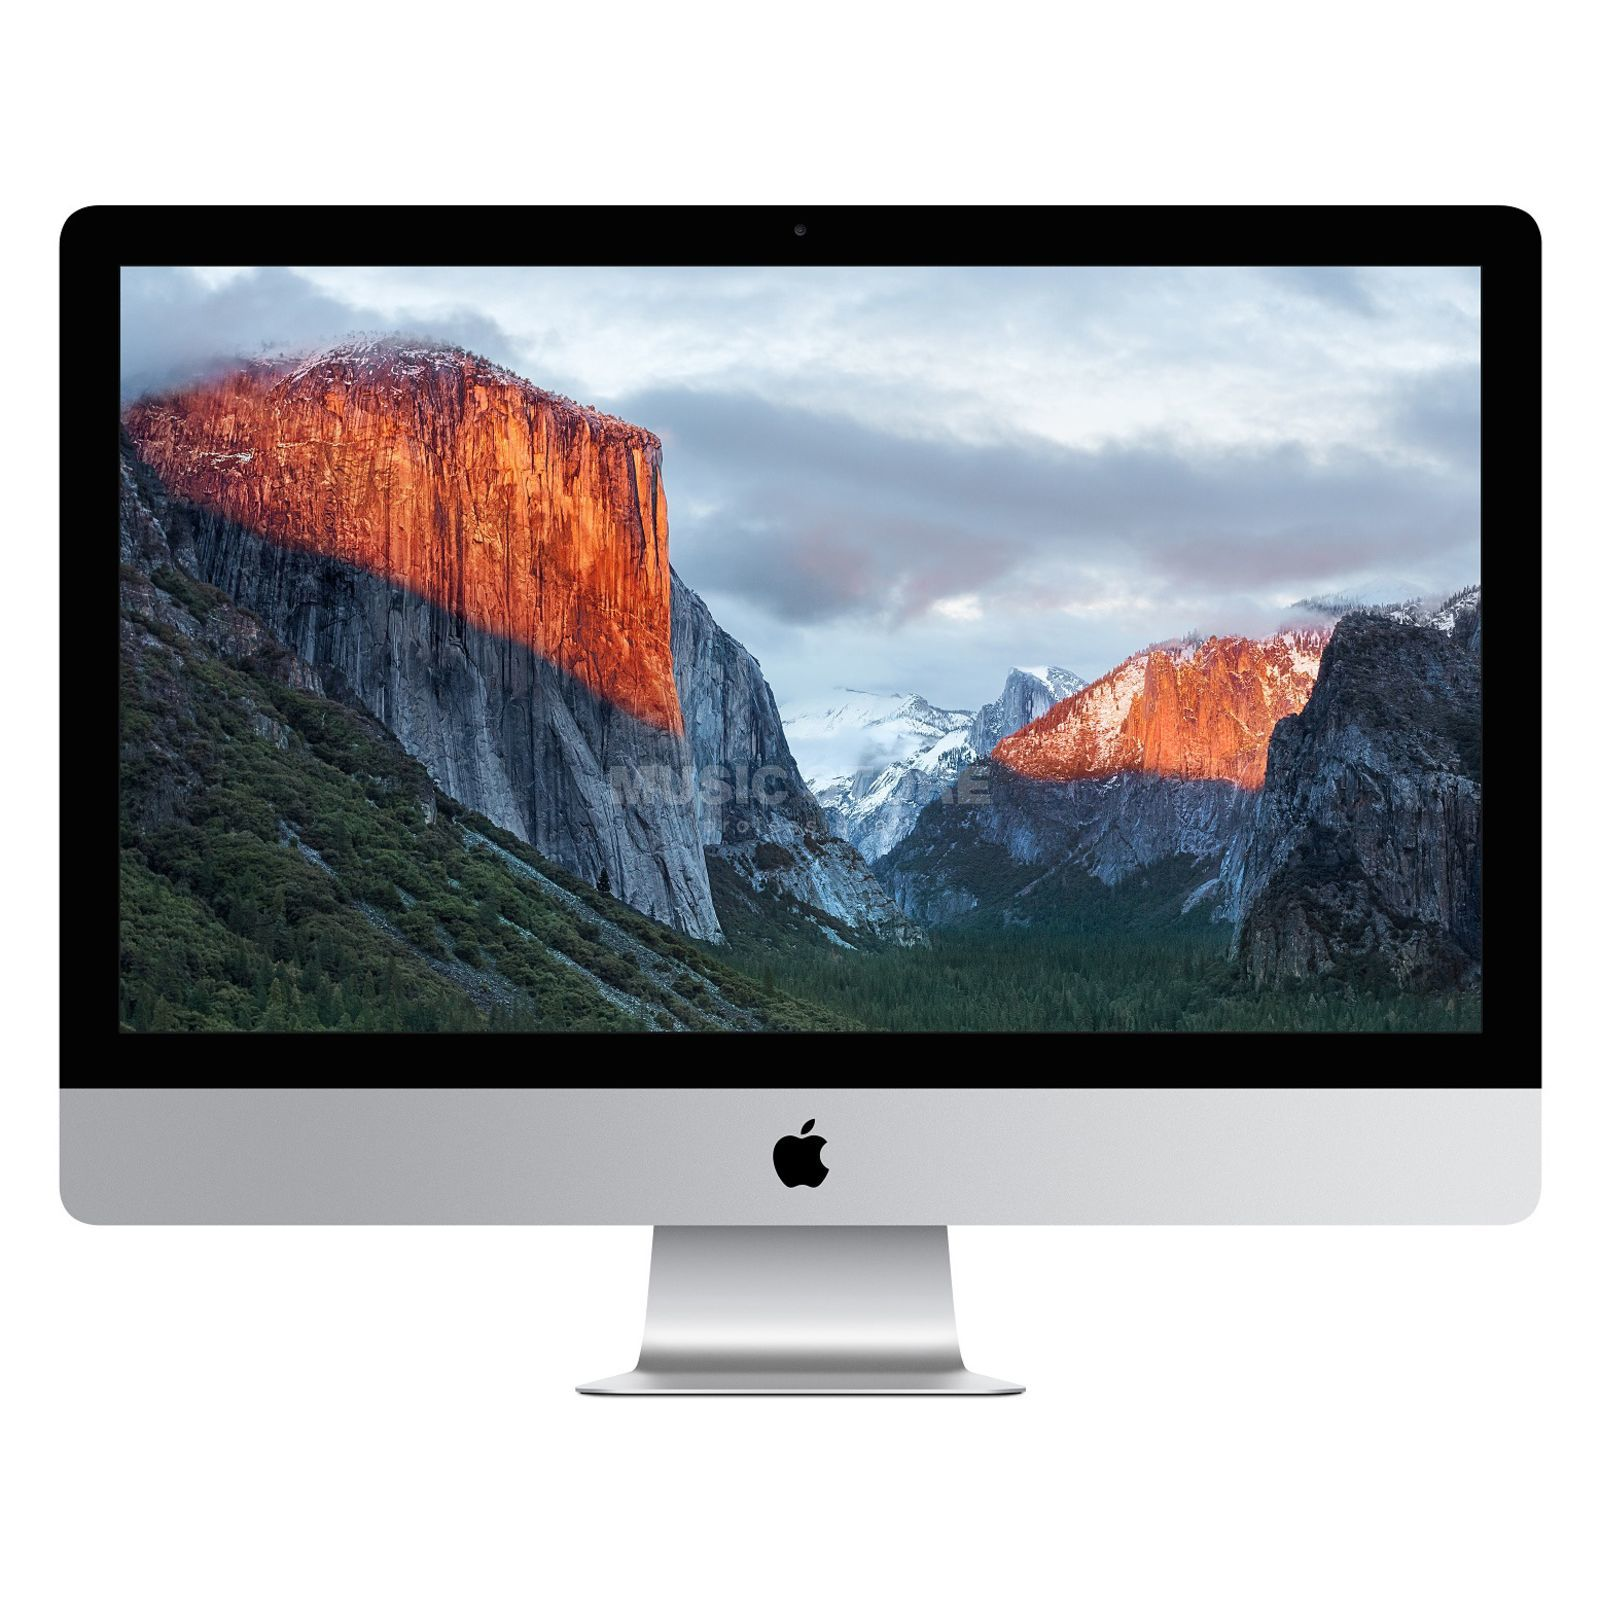 "Apple iMac 21,5"" 2,8 GHz i5 8GB RAM, 1TB, Intel HD 6200 Produktbillede"